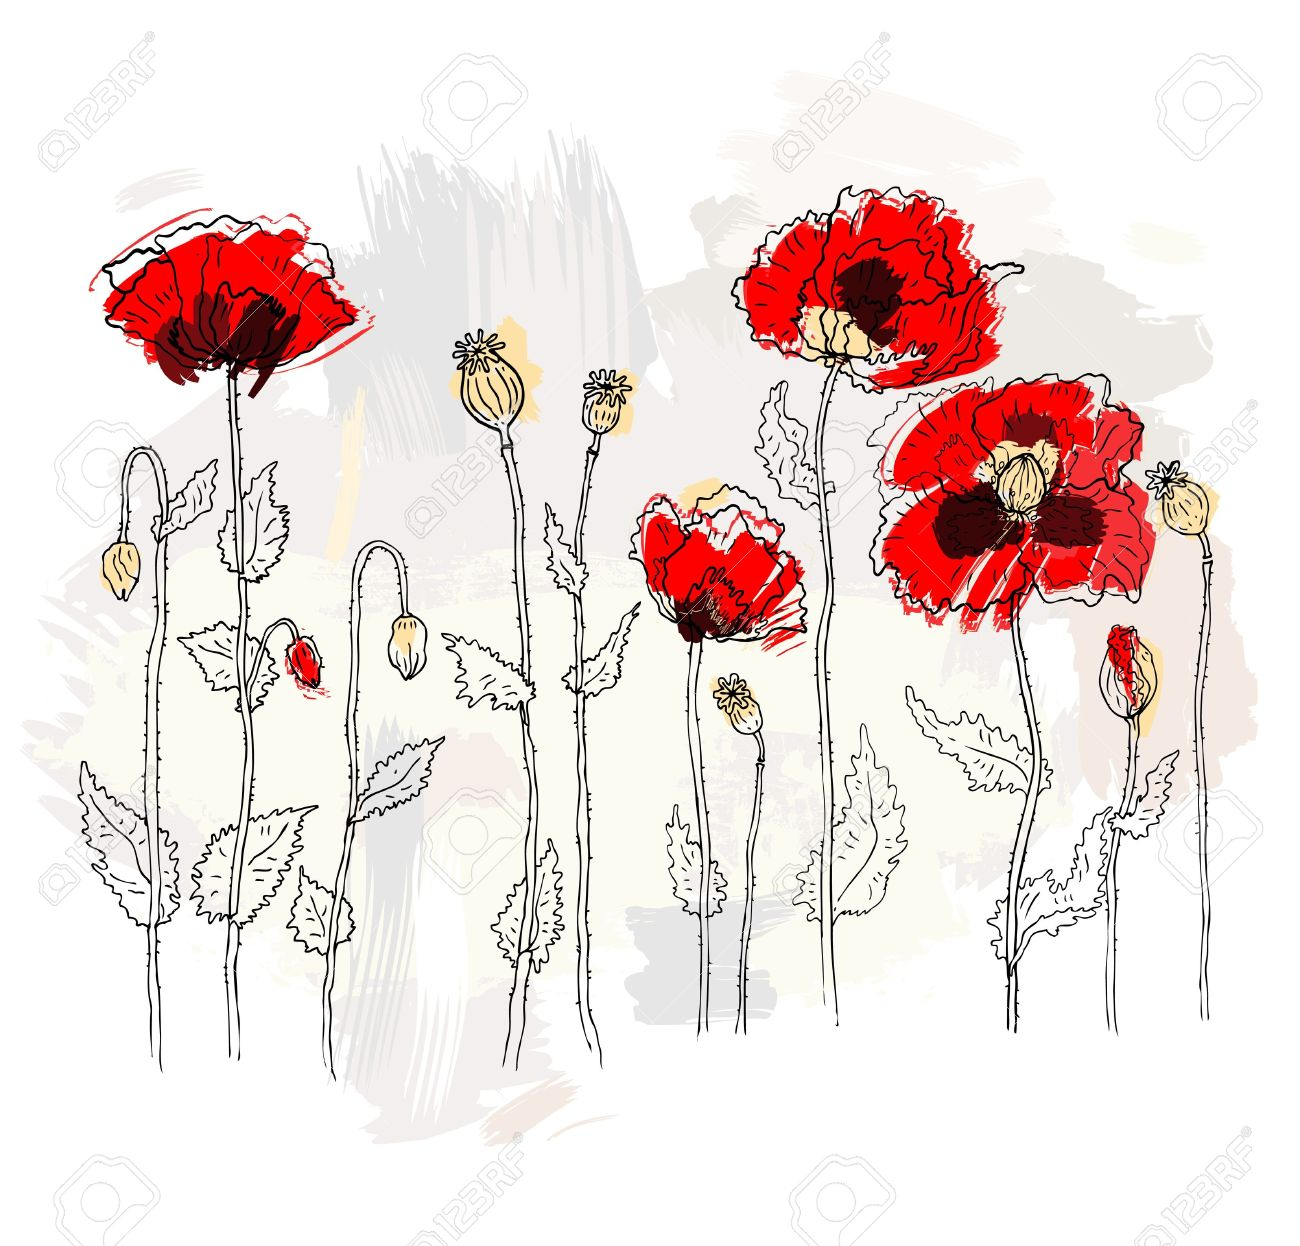 Red poppies on white background Stock Vector - 14701310